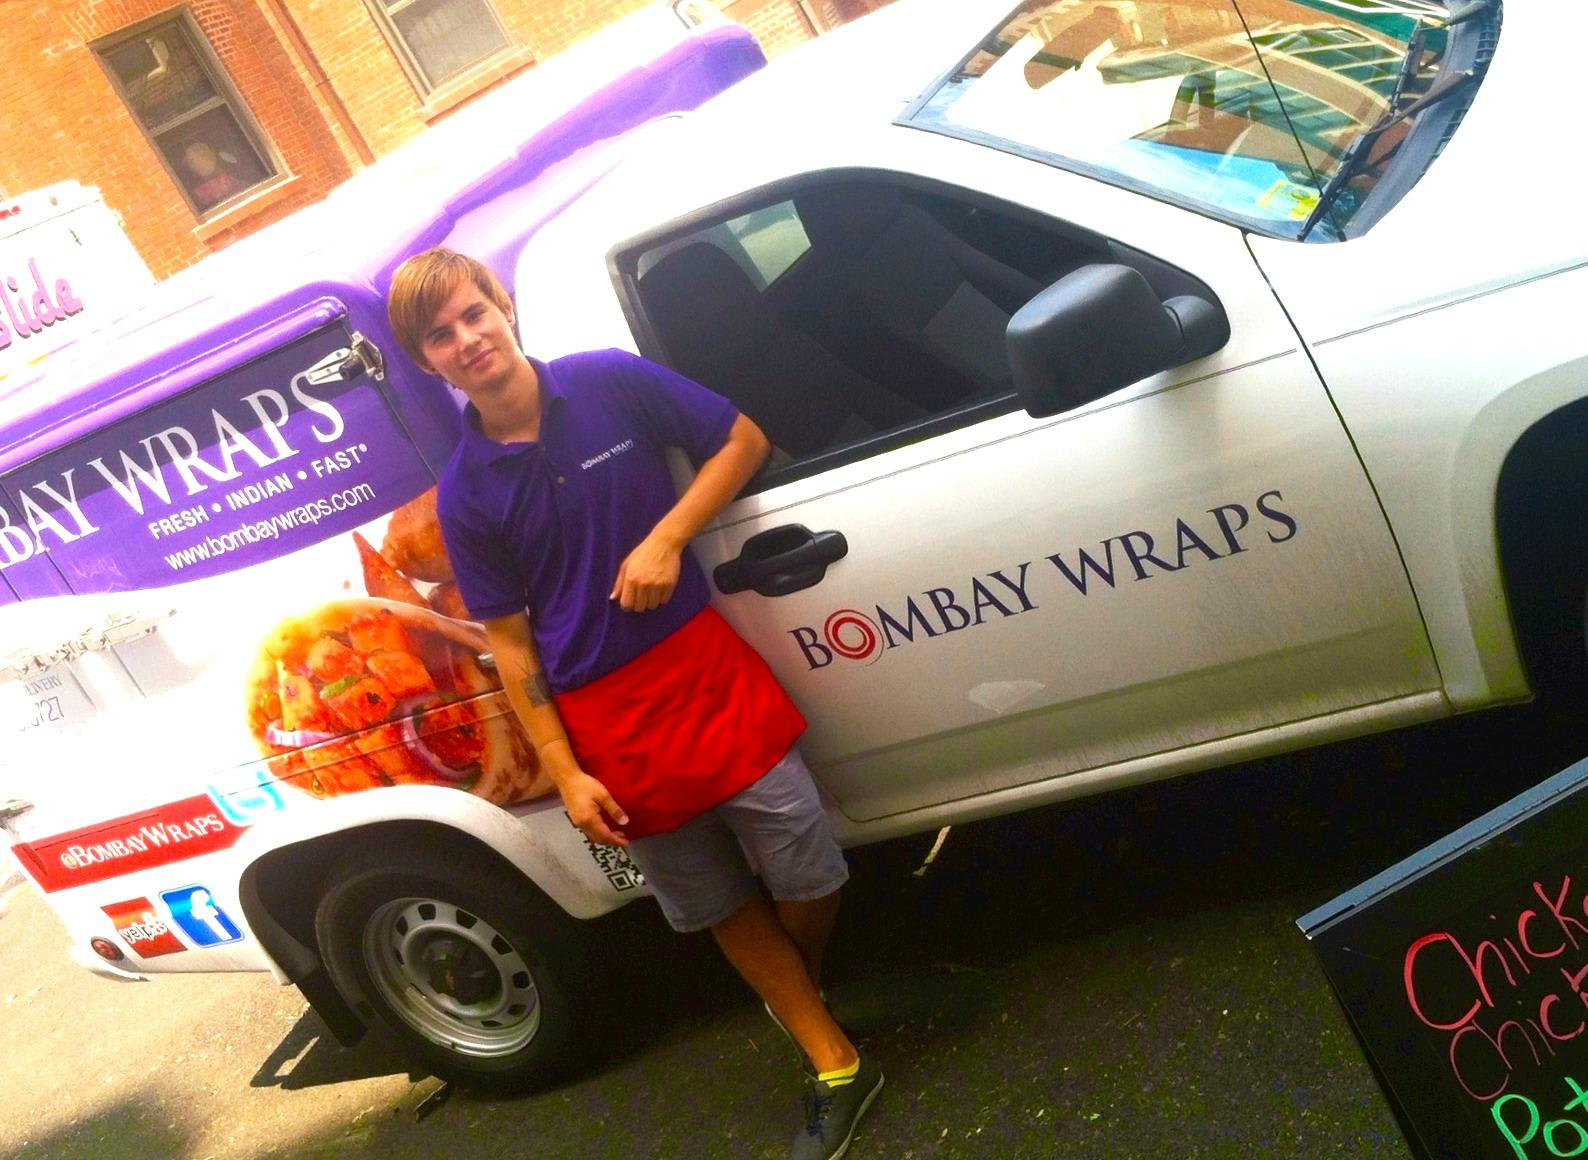 Follow us on Twitter.com/bombaywraps to get updated on our truck or call us at 312.739.9727 to have our truck at your event at Bombay Wraps